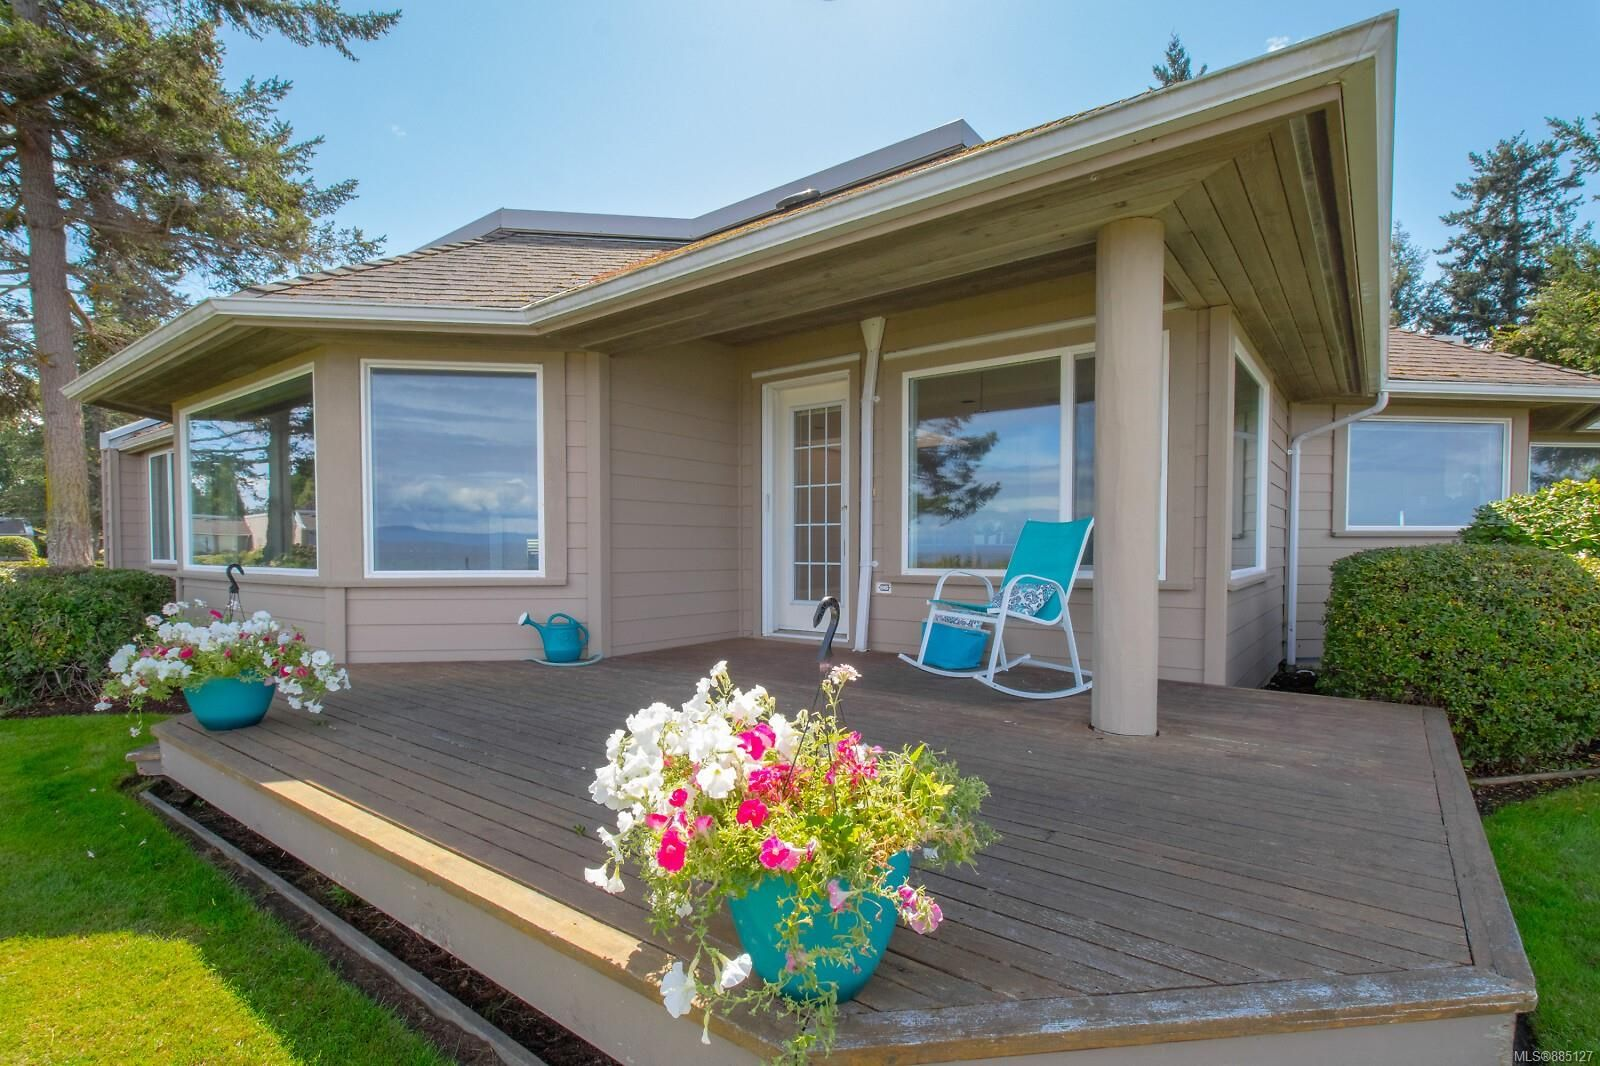 Photo 31: Photos: 26 529 Johnstone Rd in : PQ French Creek Row/Townhouse for sale (Parksville/Qualicum)  : MLS®# 885127